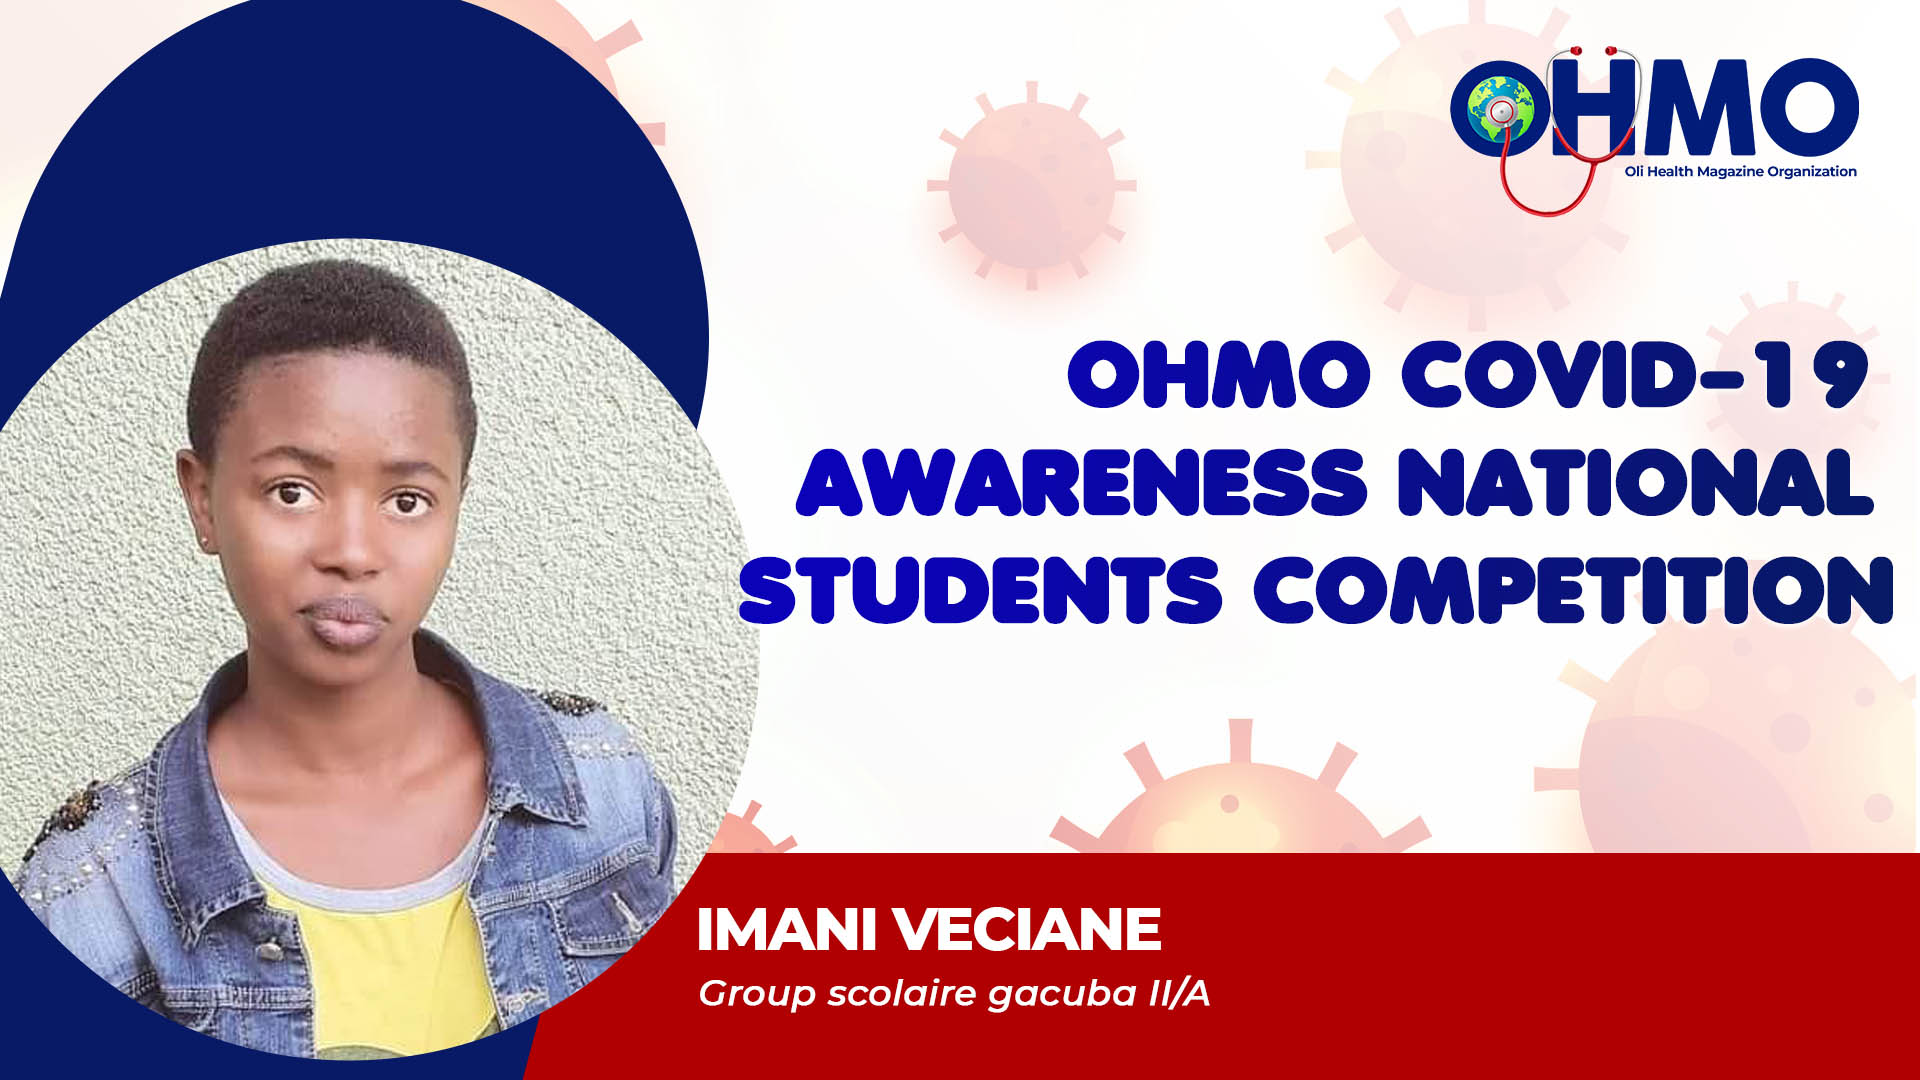 COVID19 Awareness - IMANI Veciane from Group scolaire de gacuba II/A (ENTRY 57)